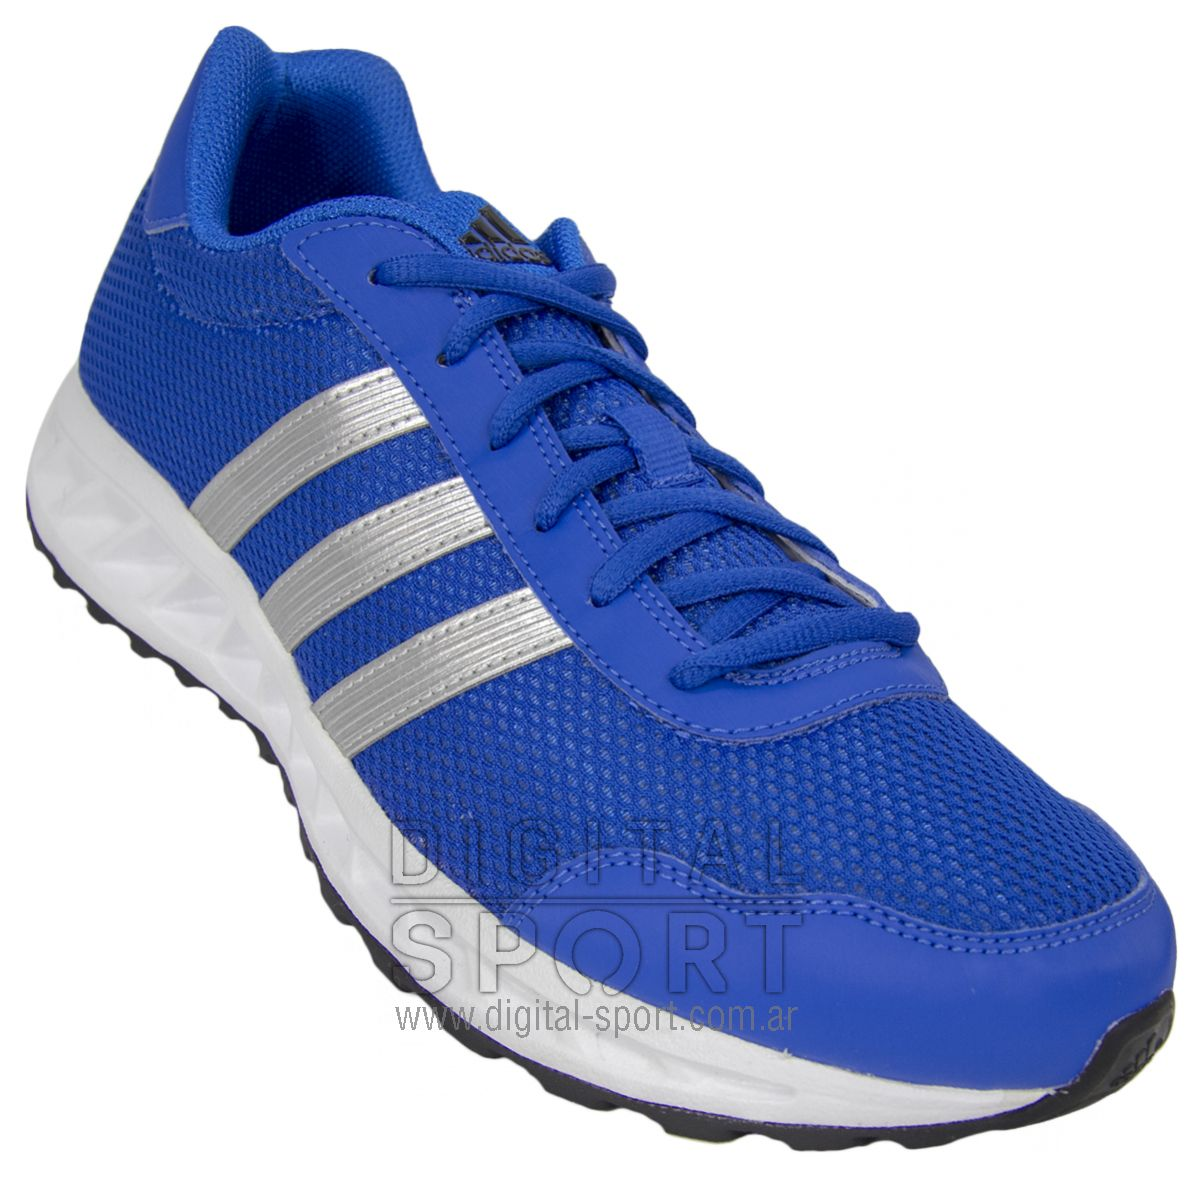 Gestionar cortar parcialidad  zapatillas adidas hombre 2013 Cheaper Than Retail Price> Buy Clothing,  Accessories and lifestyle products for women & men -